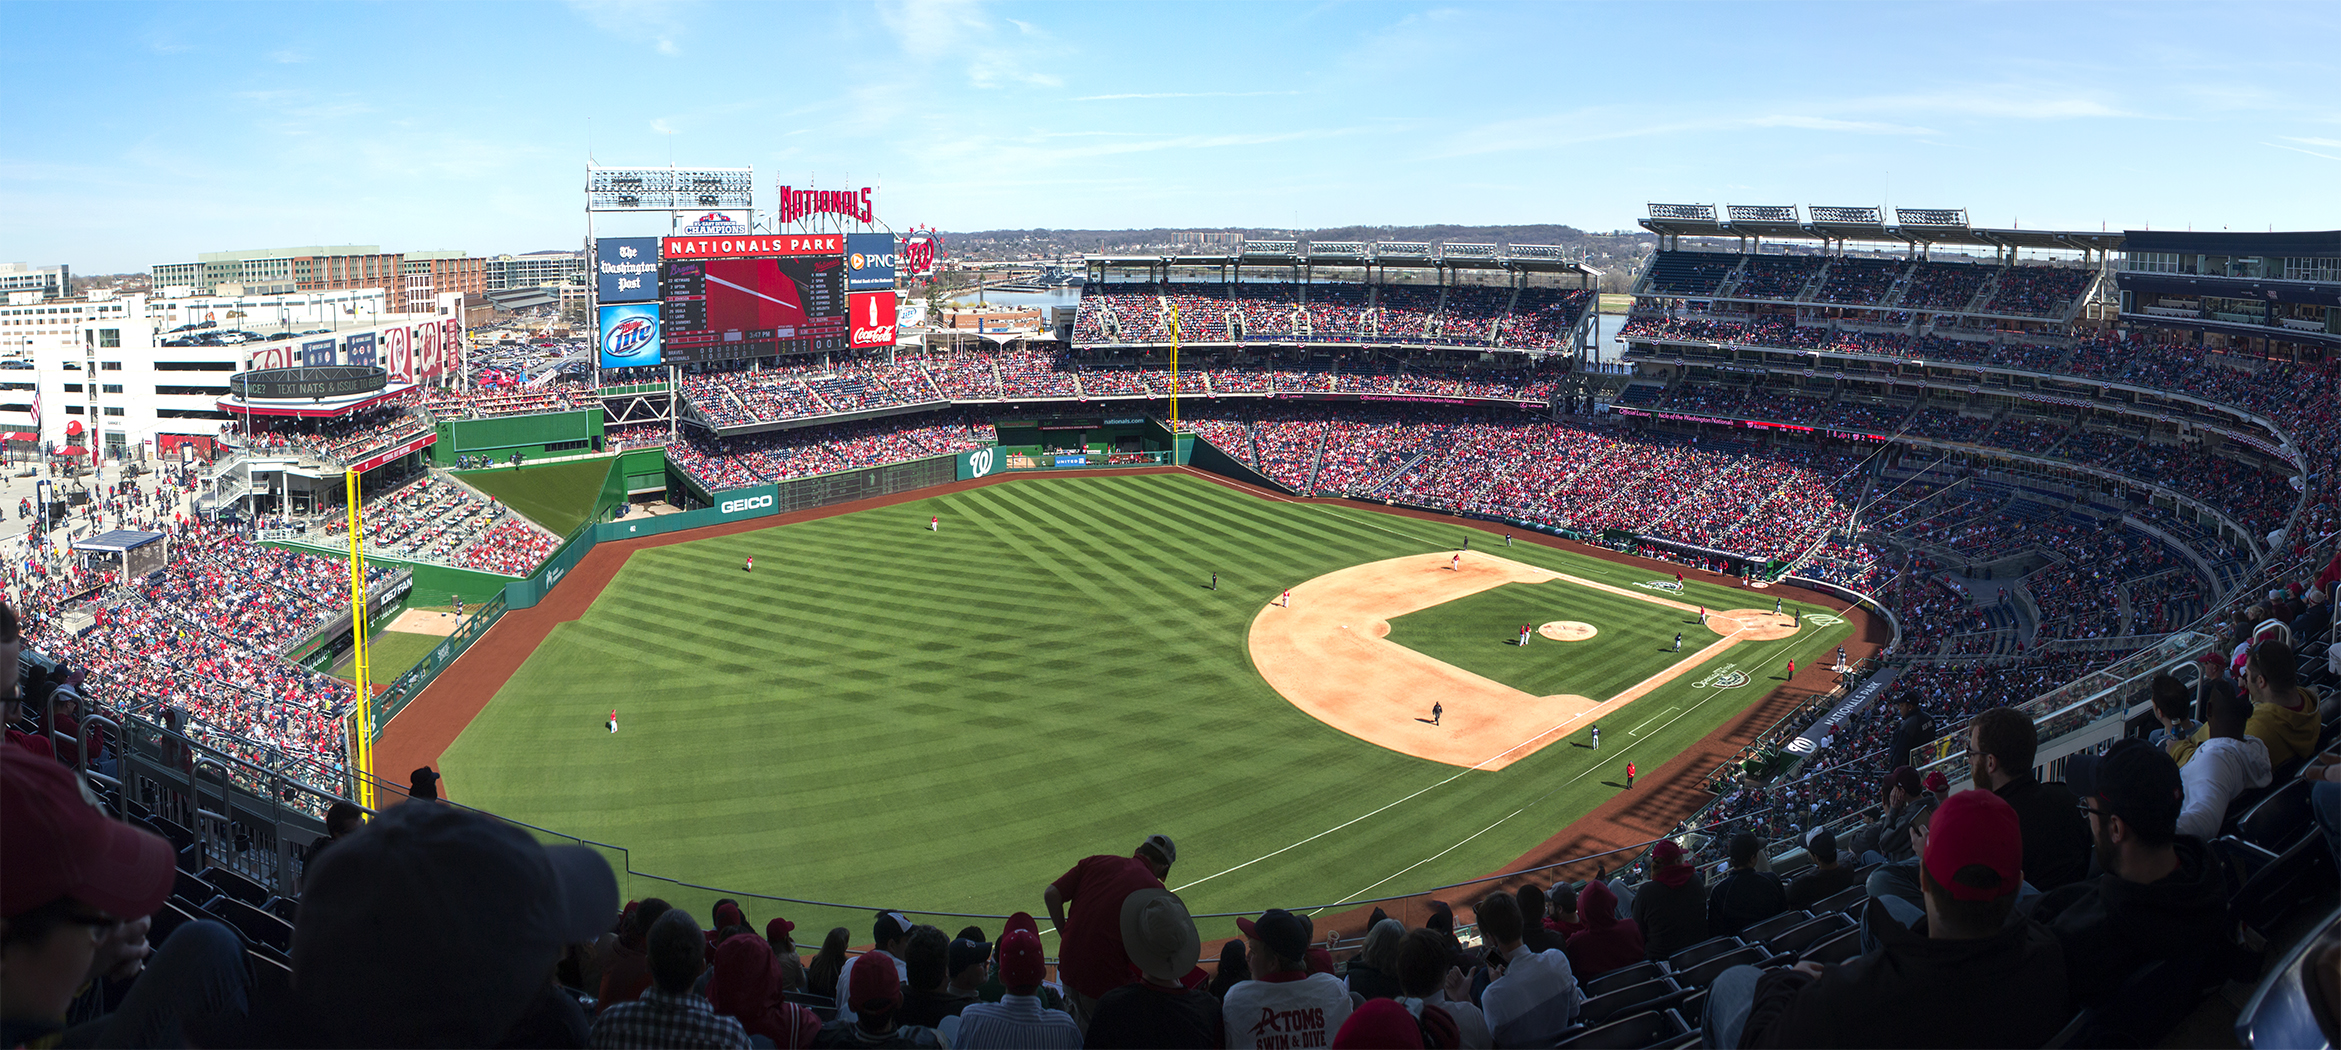 The inside of a baseball stadium. There are billboards and many fans sitting in the background.